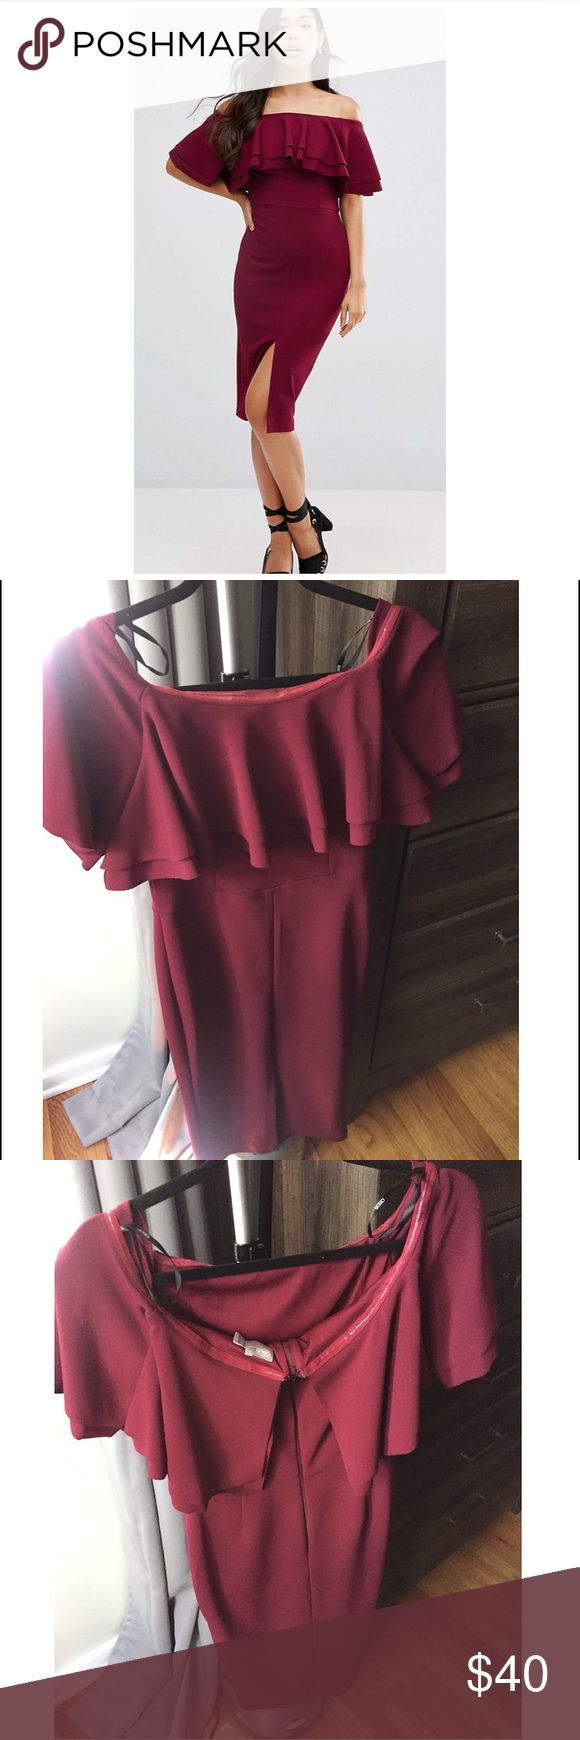 ASOS Double Ruffle Bardot Midi Dress UK 10/US 6 Gorgeous Burgundy dress, WORN ONCE, Excellent Condition!!! No stains, wrinkles, or marks. Very flattering and figure friendly! Stretchy, quality material. Asos Dresses Midi